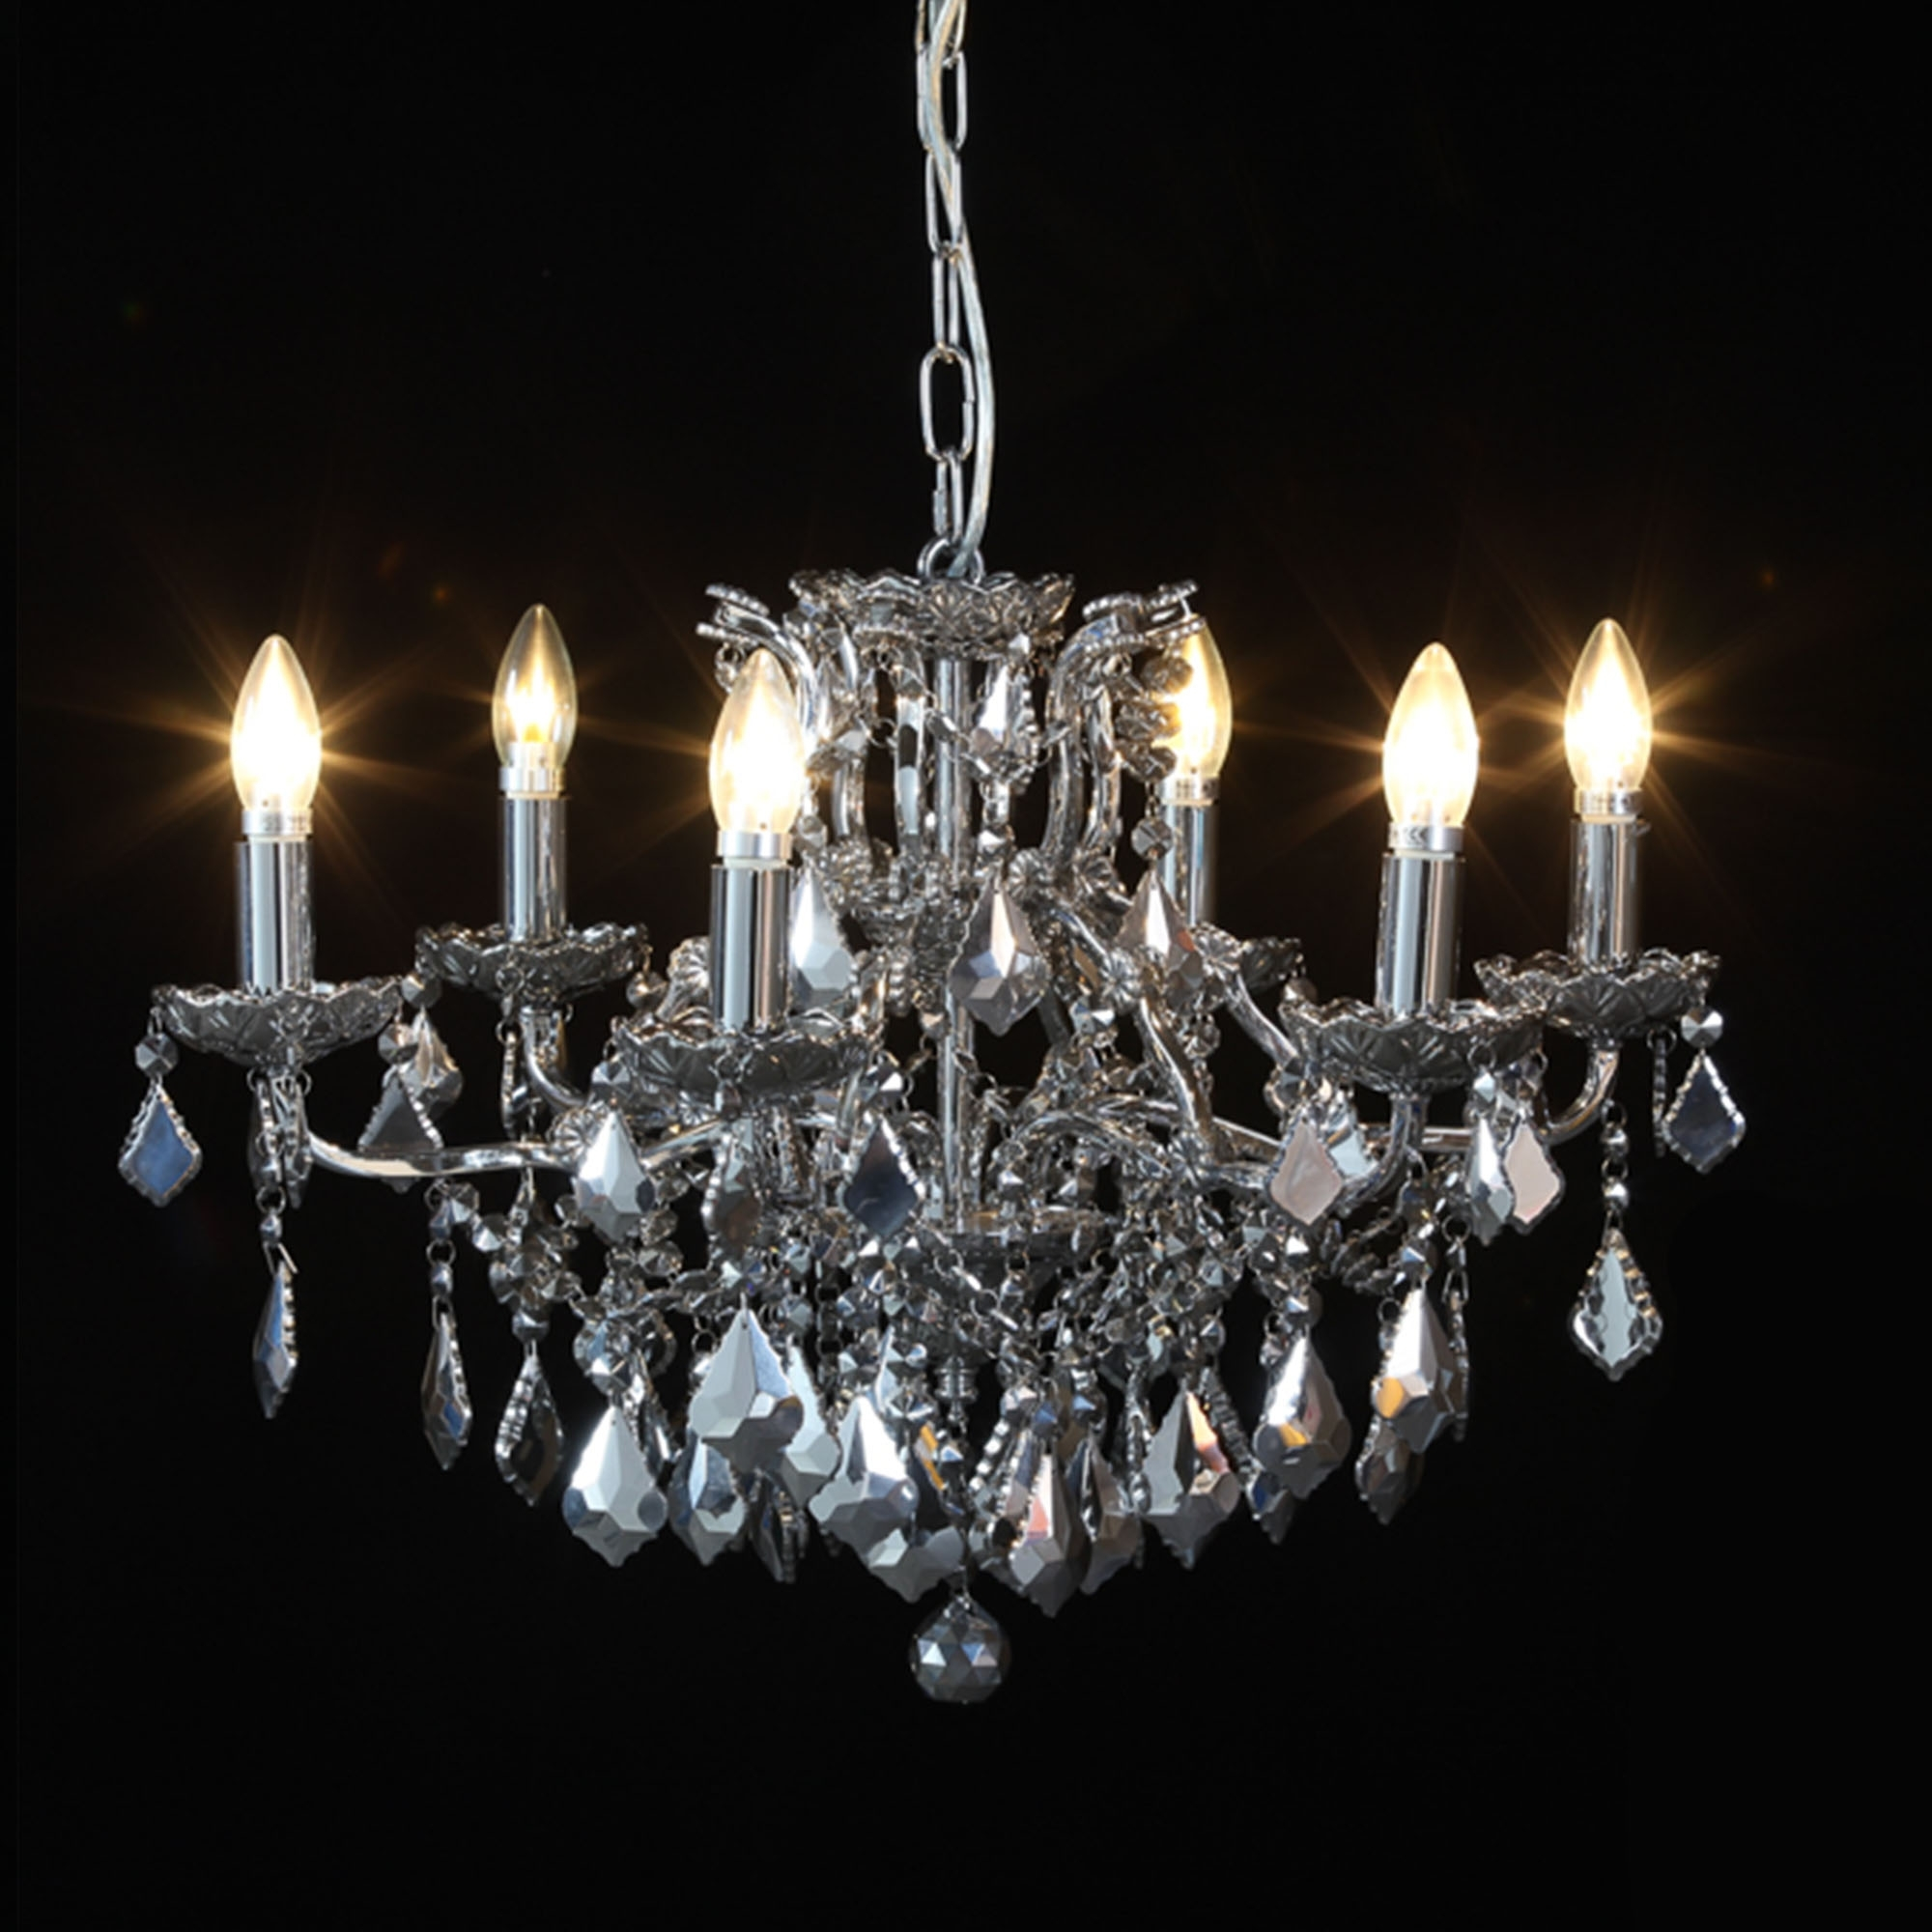 French Silver Chandeliers